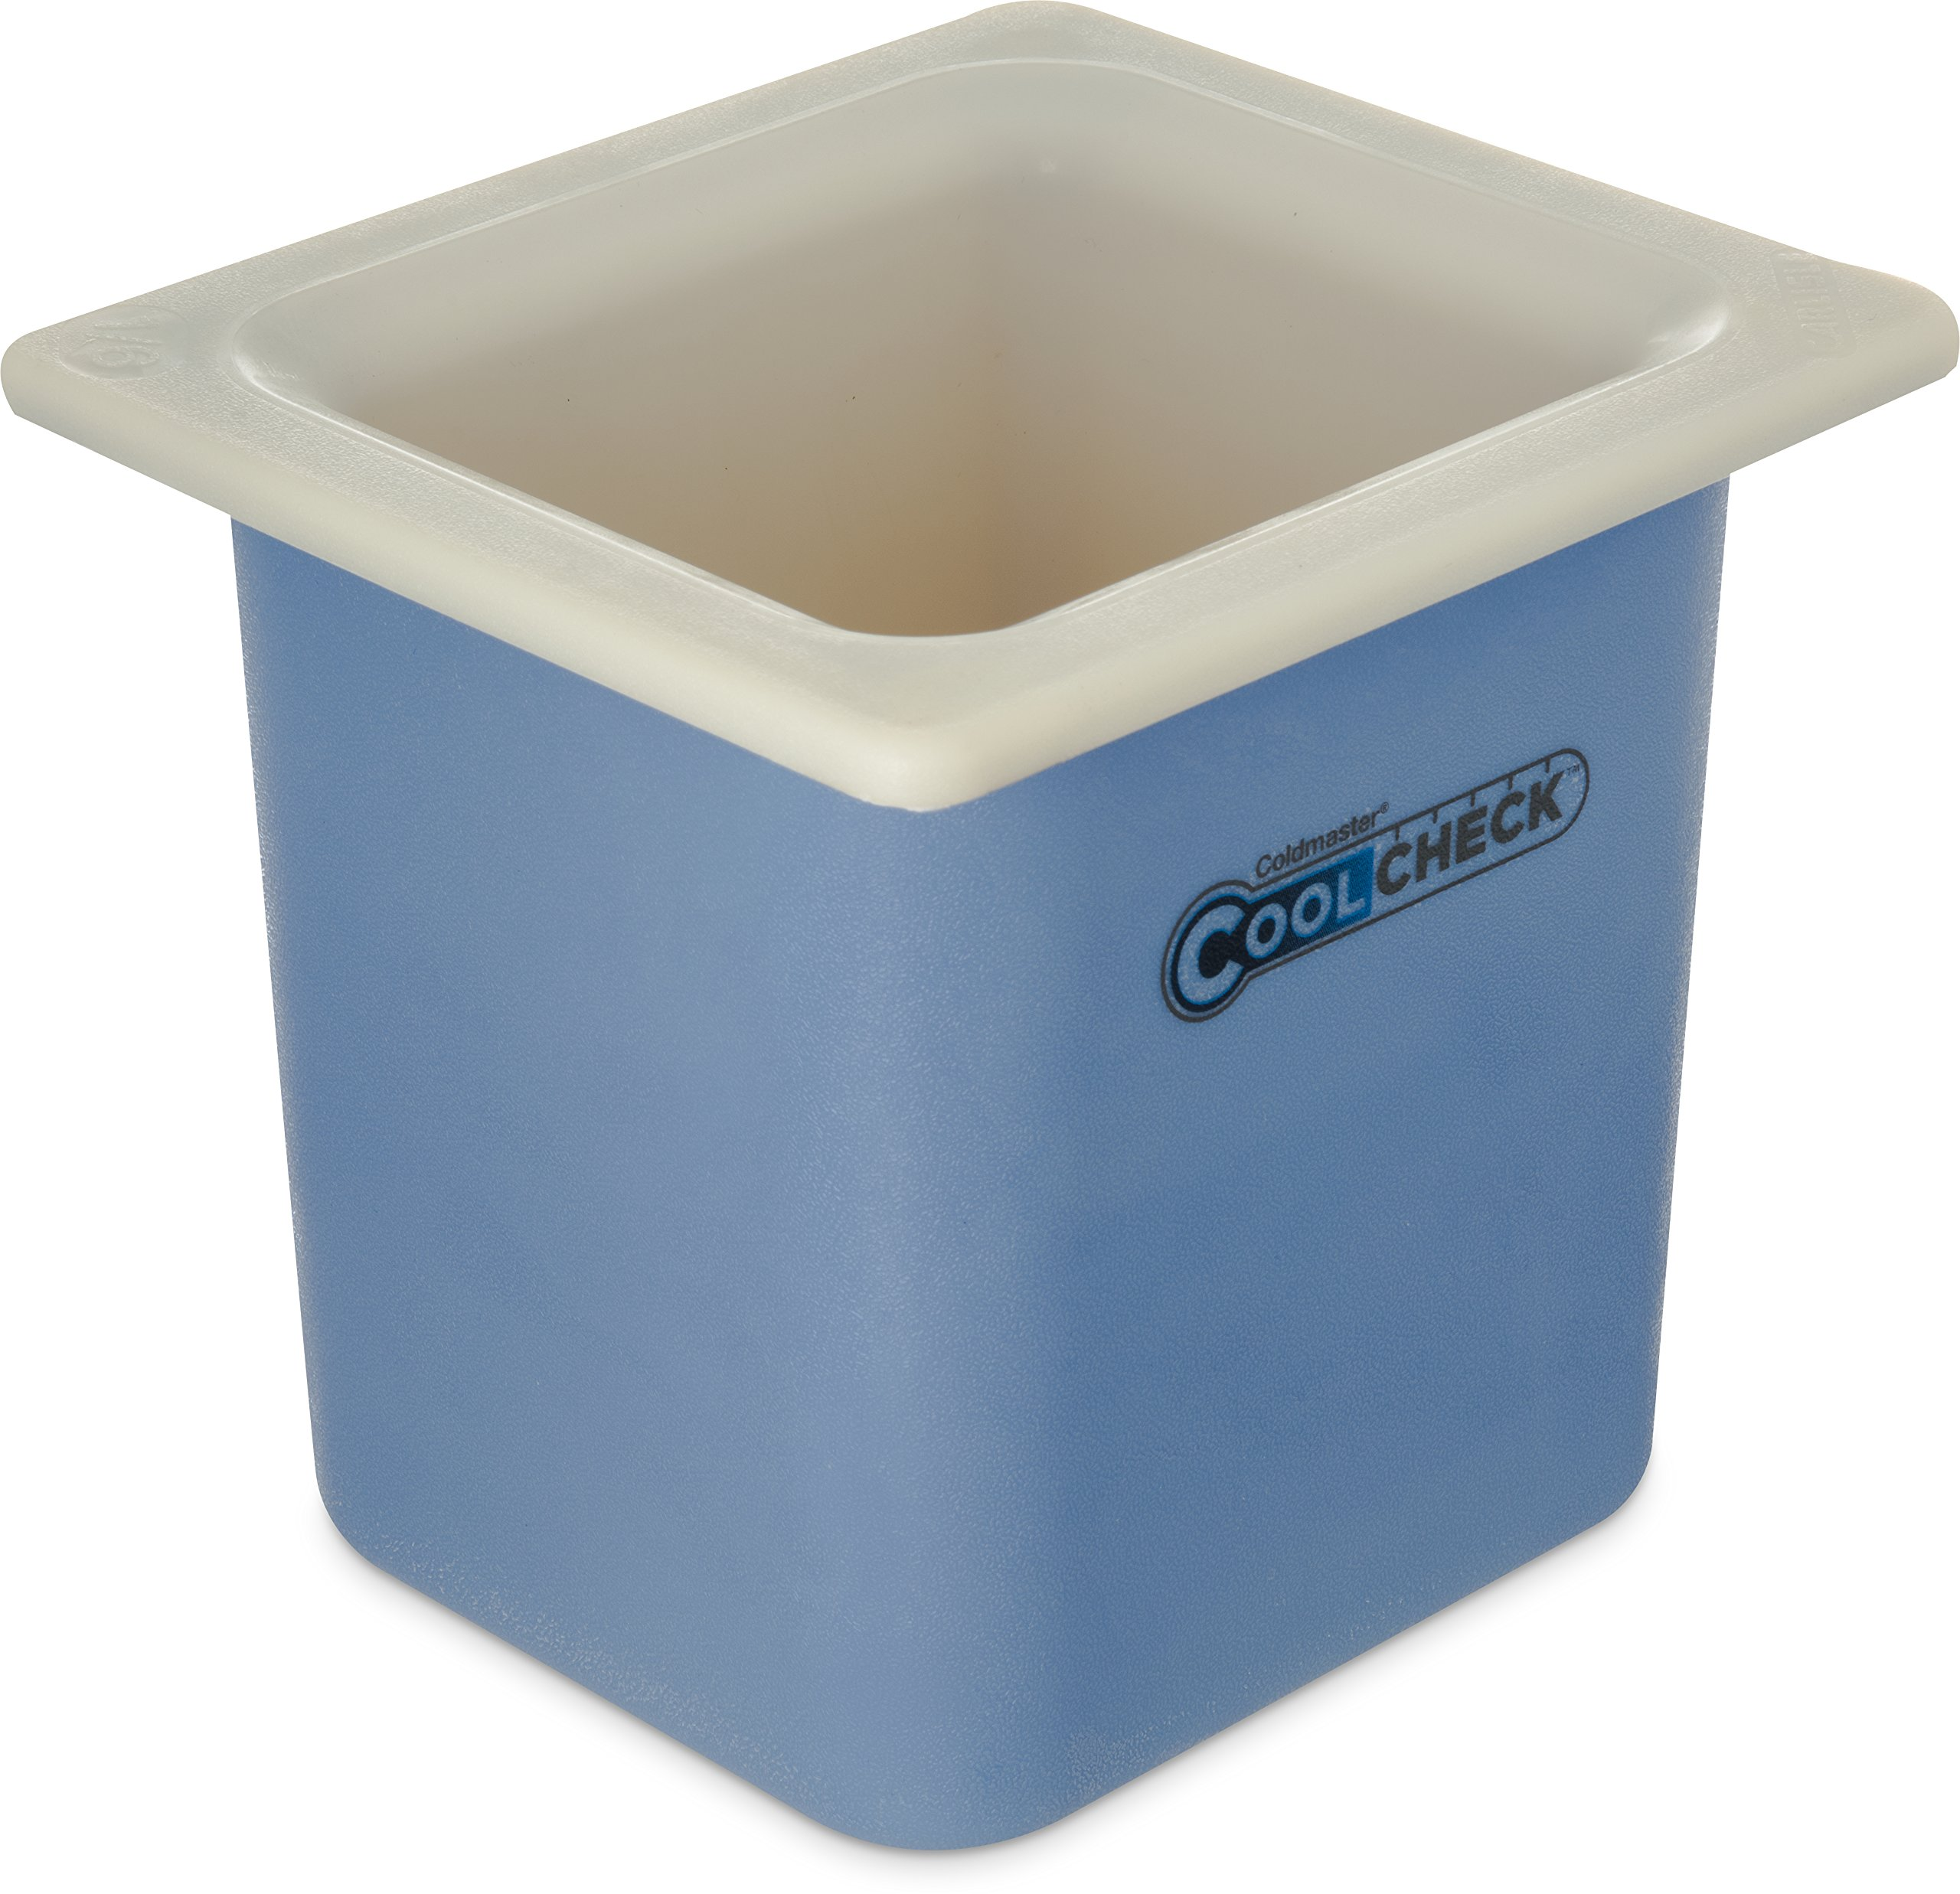 Carlisle CM1105C1402 Coldmaster CoolCheck 6'' Deep Sixth-Size High Capacity Insulated Cold Food Pan, 1.7 Quart, Color Changing, White/Blue